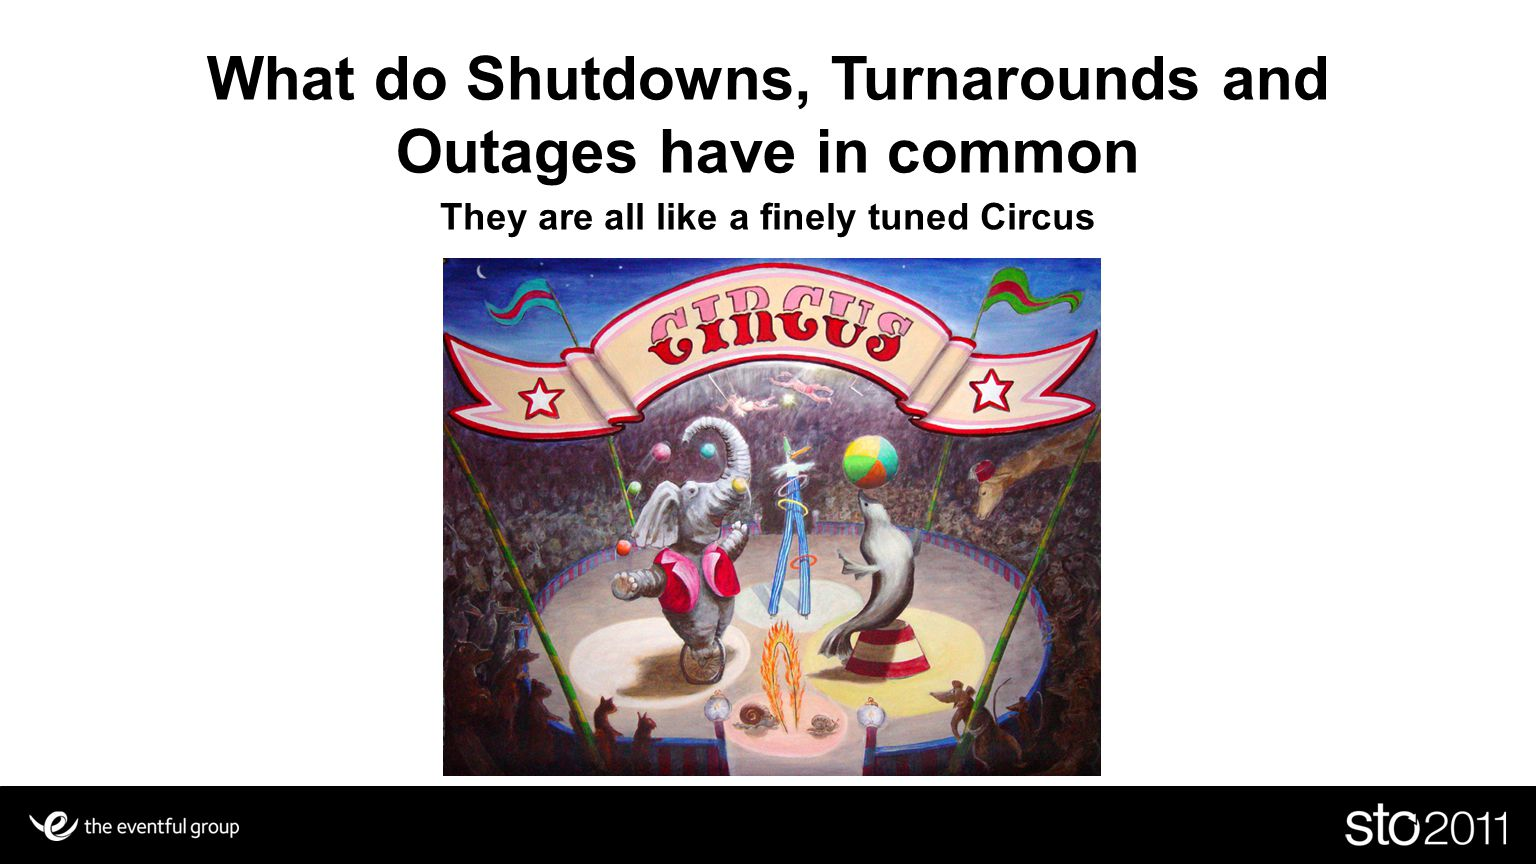 What do Shutdowns, Turnarounds and Outages have in common They are all like a finely tuned Circus